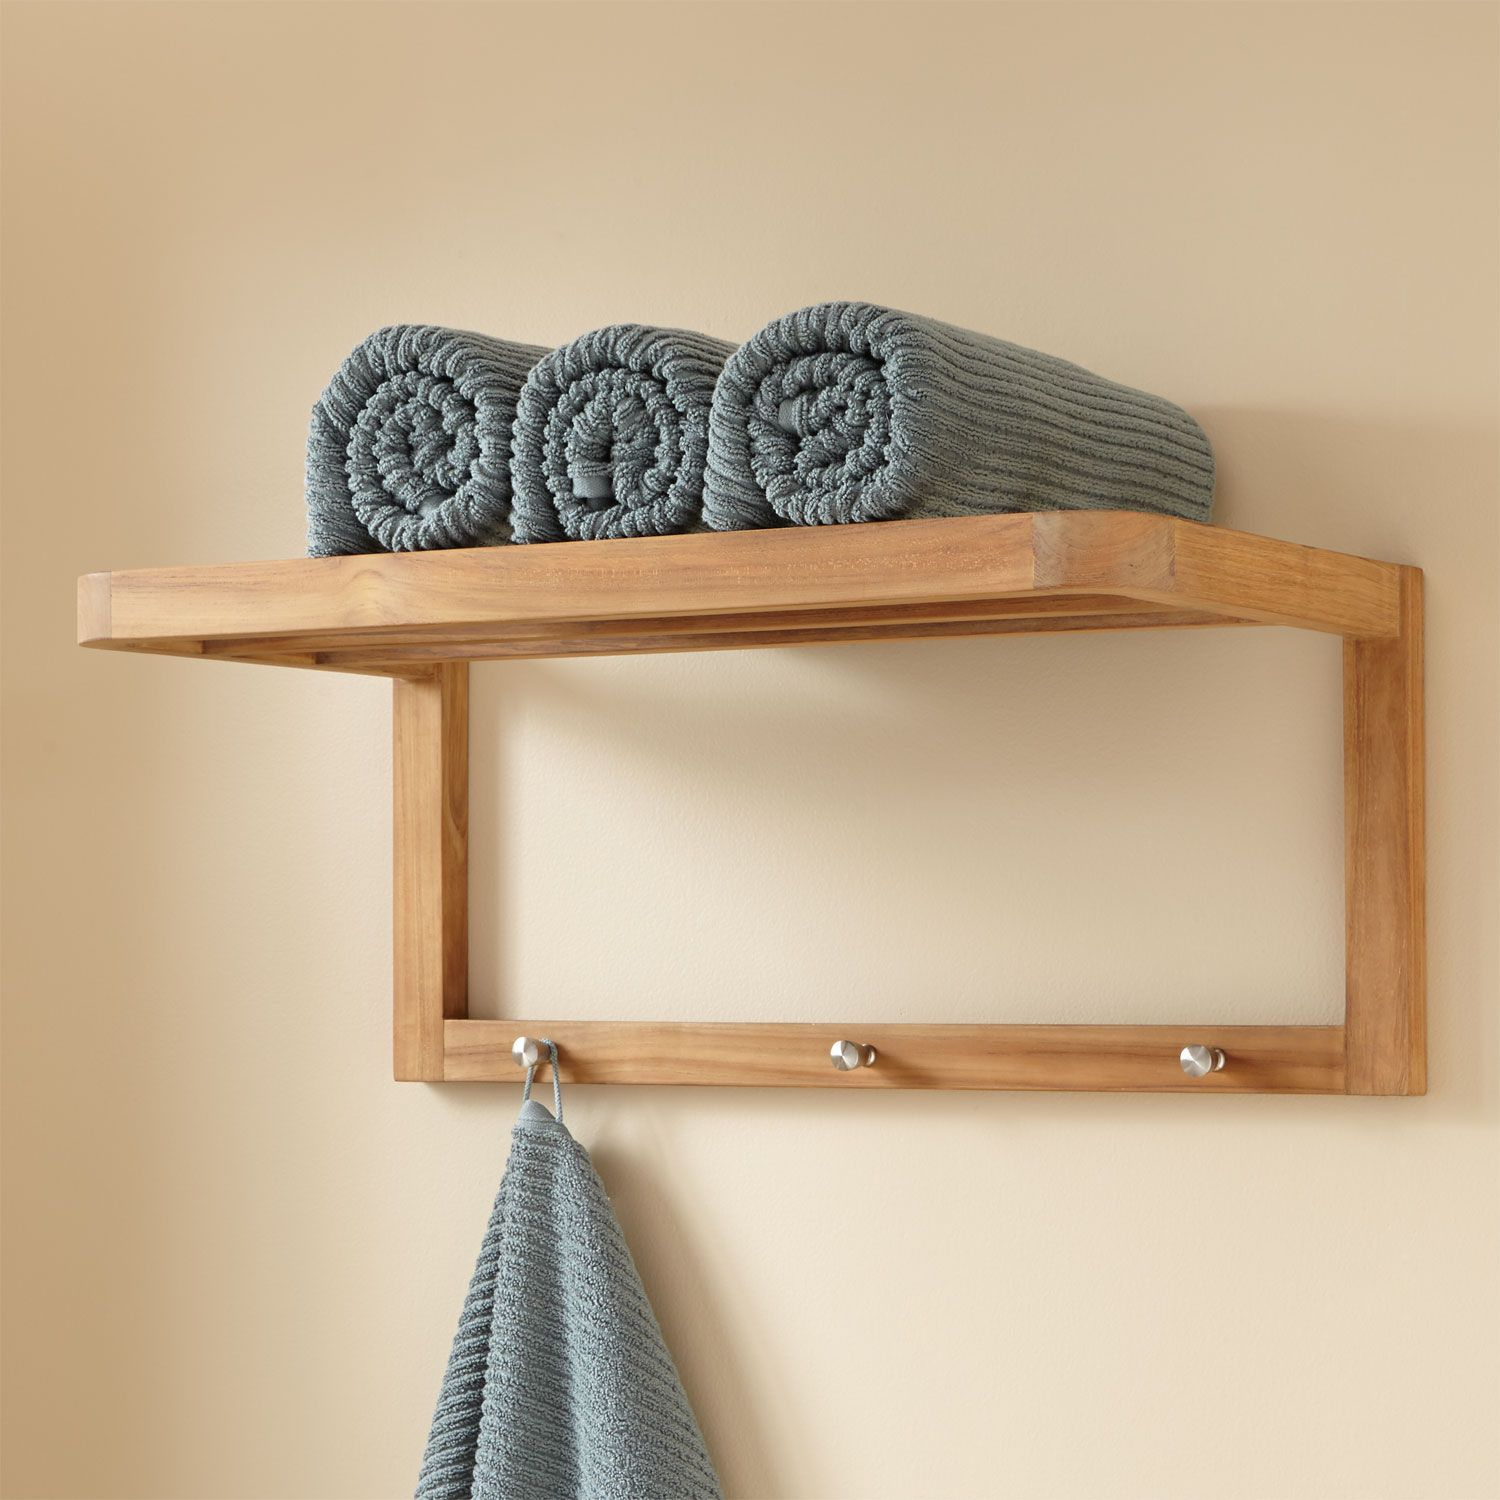 Pathein Bamboo Towel Rack With Hooks